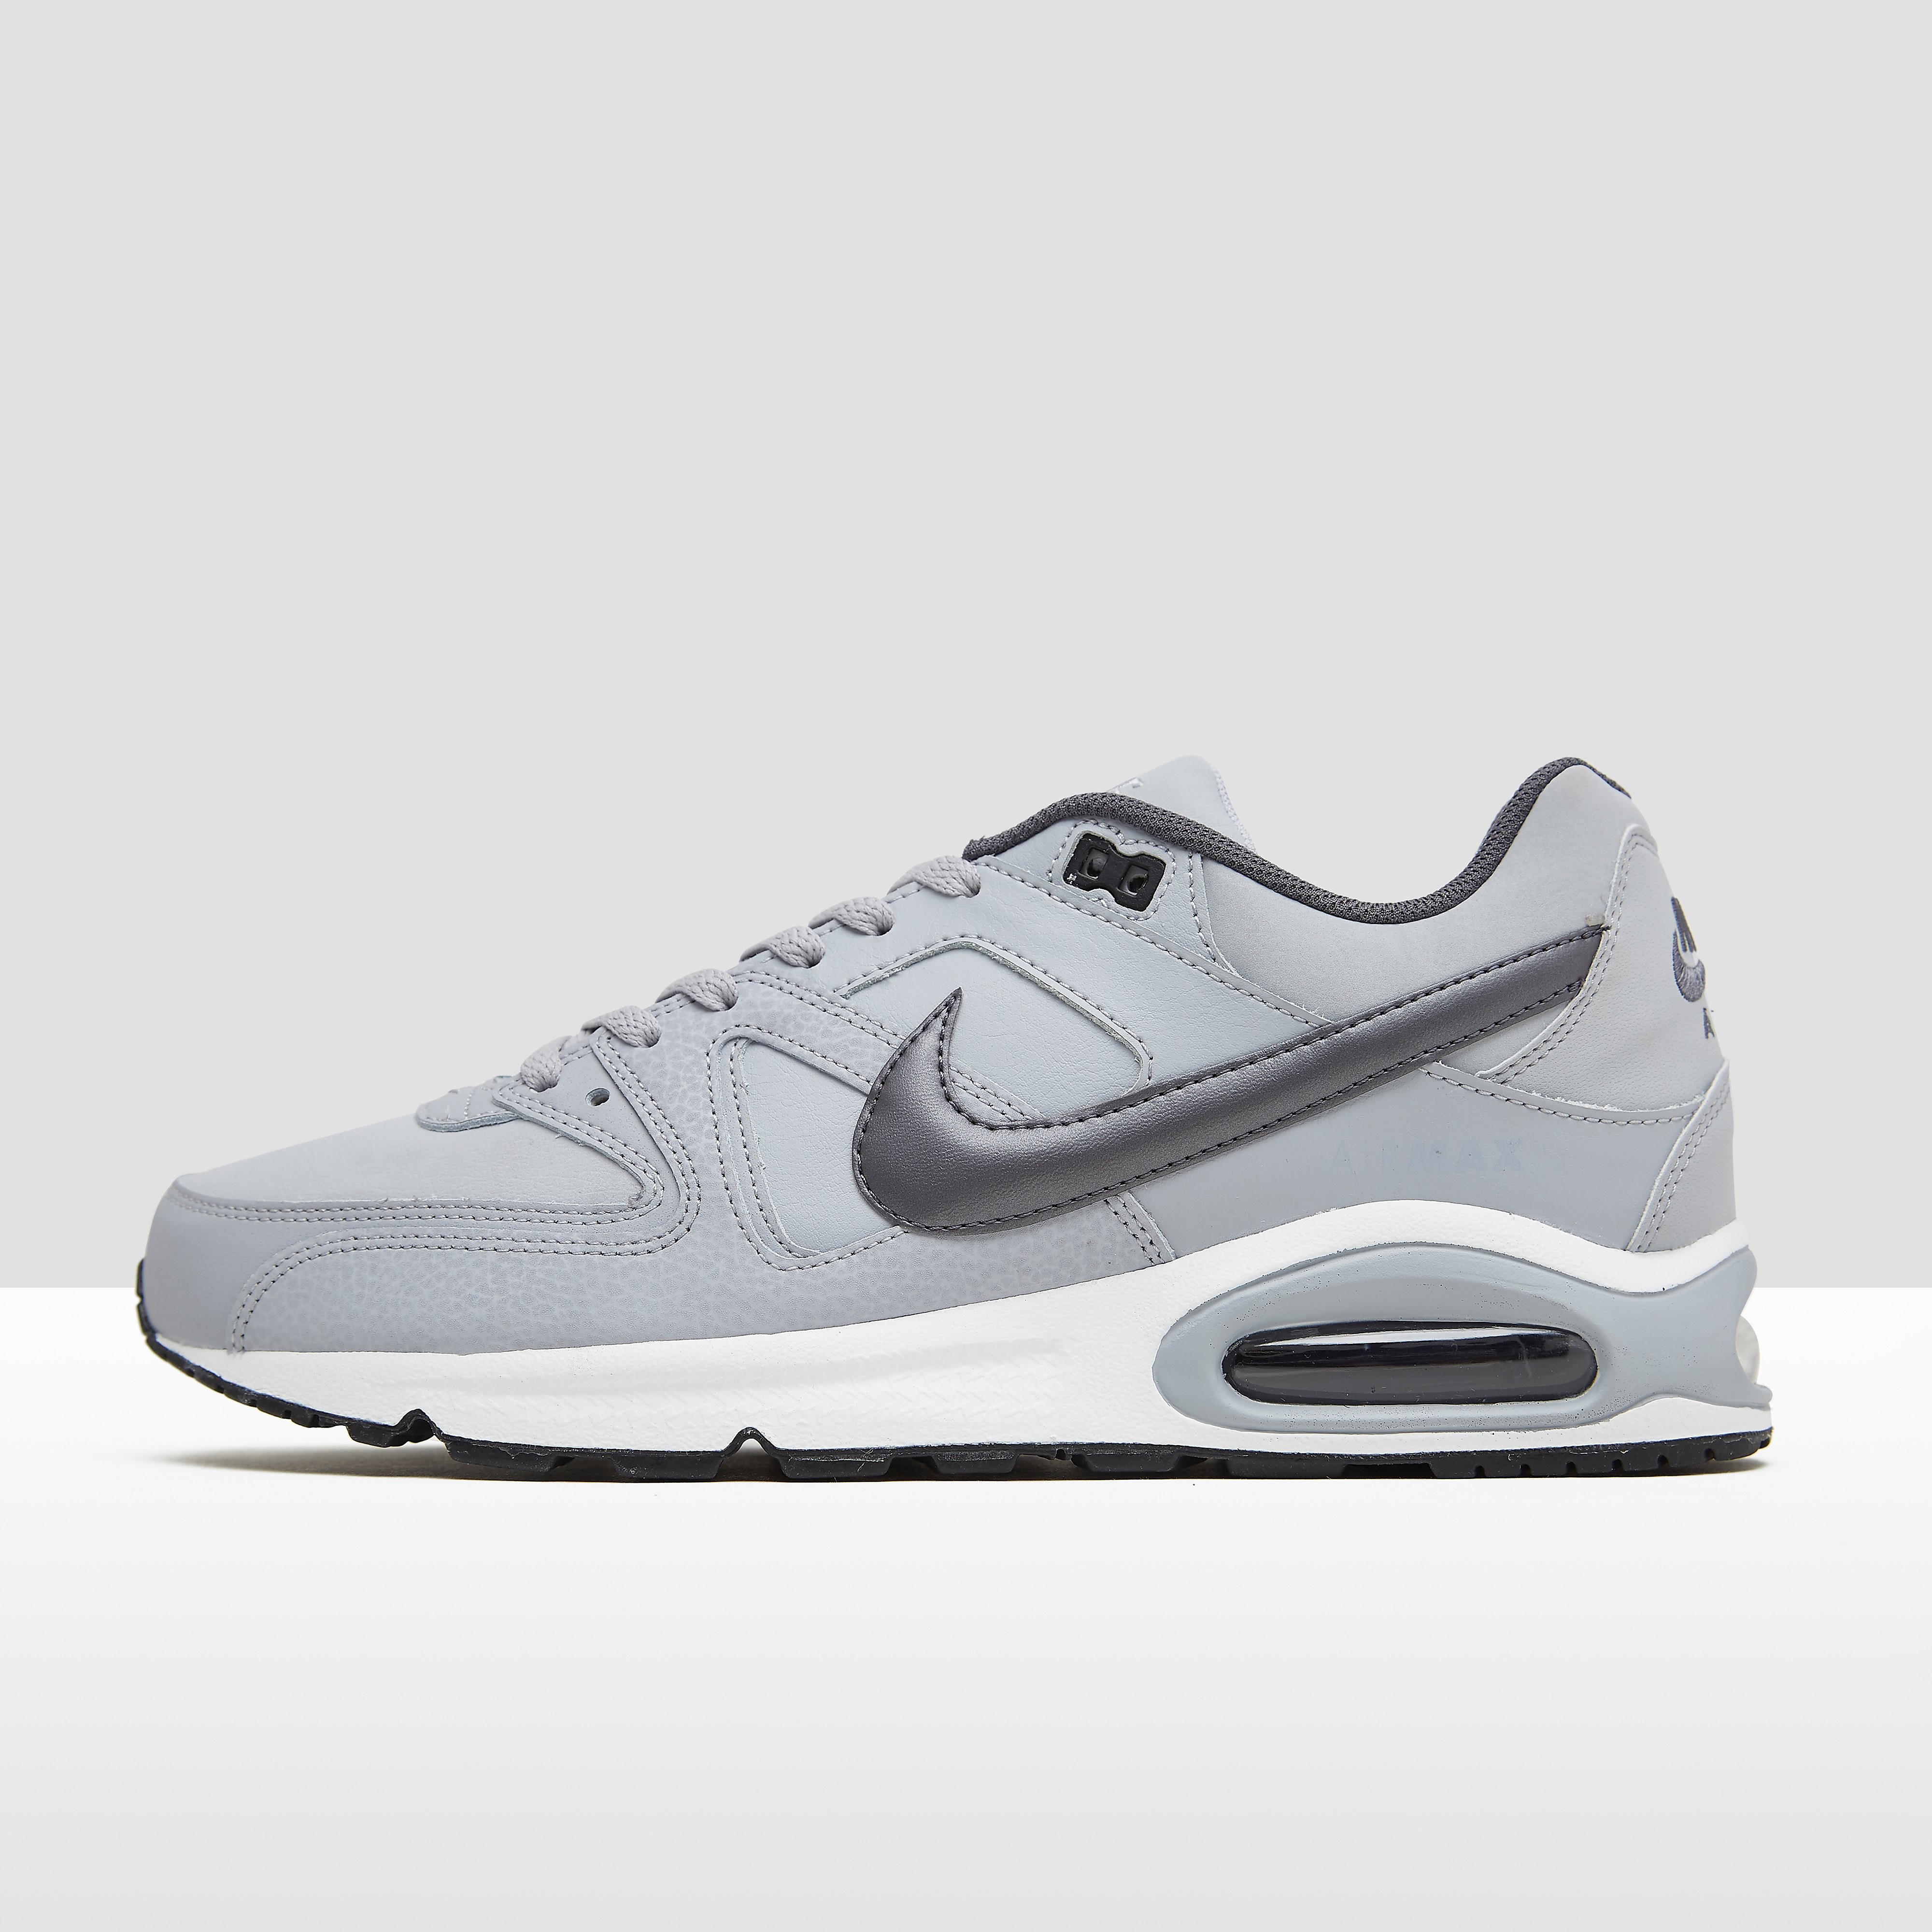 Nike Air Max Command herensneaker grijs